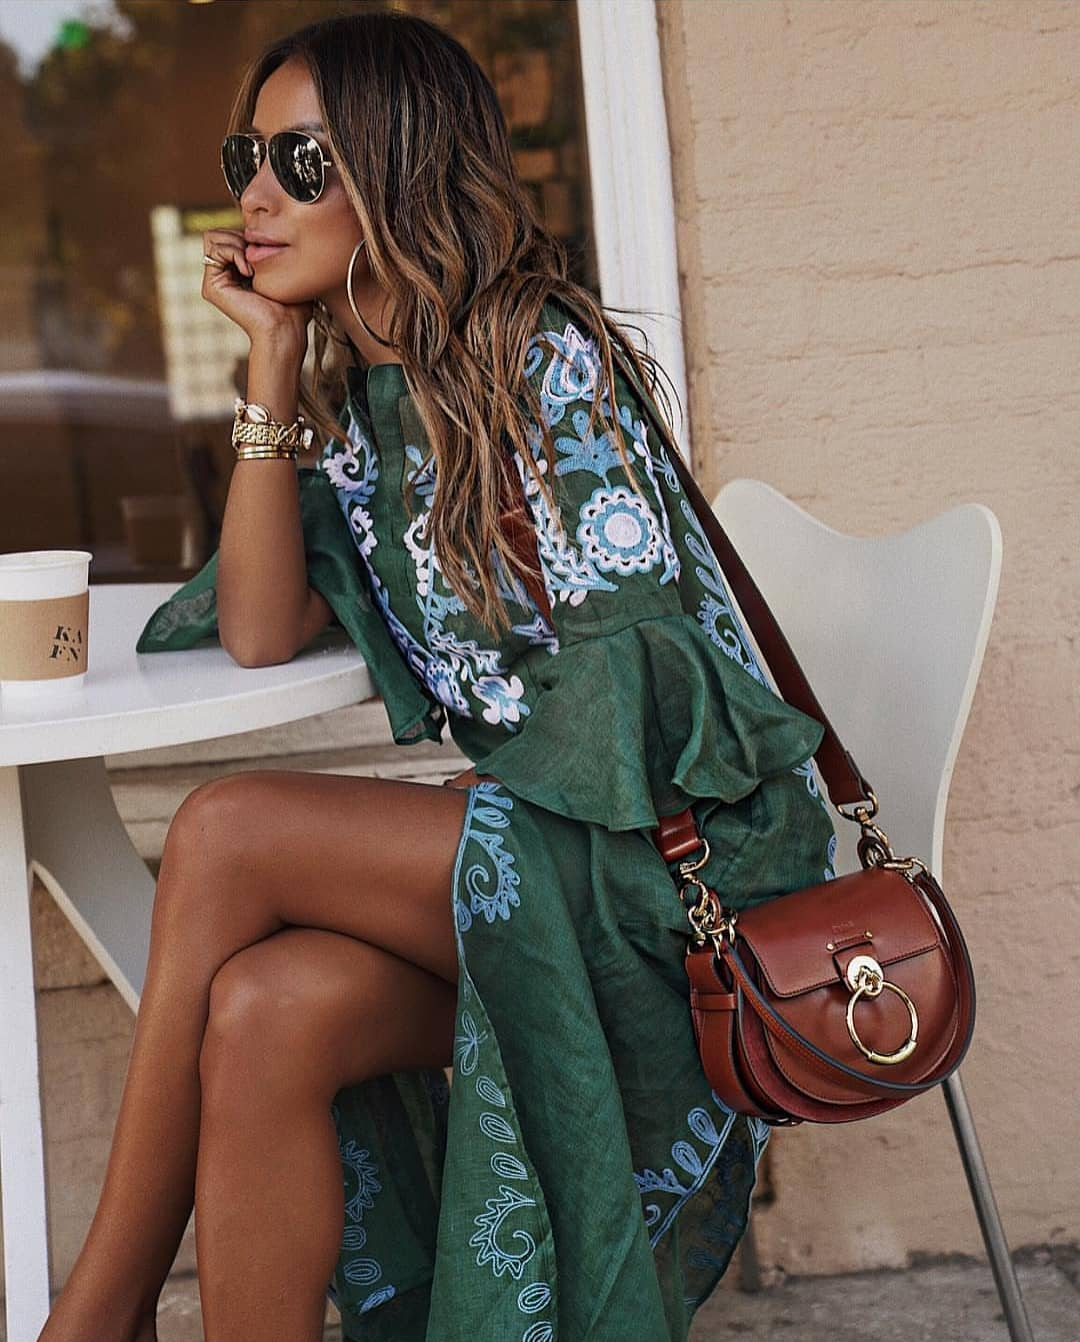 Bohemian Maxi Dress In Green With Embroideries For Summer Vacation 2020